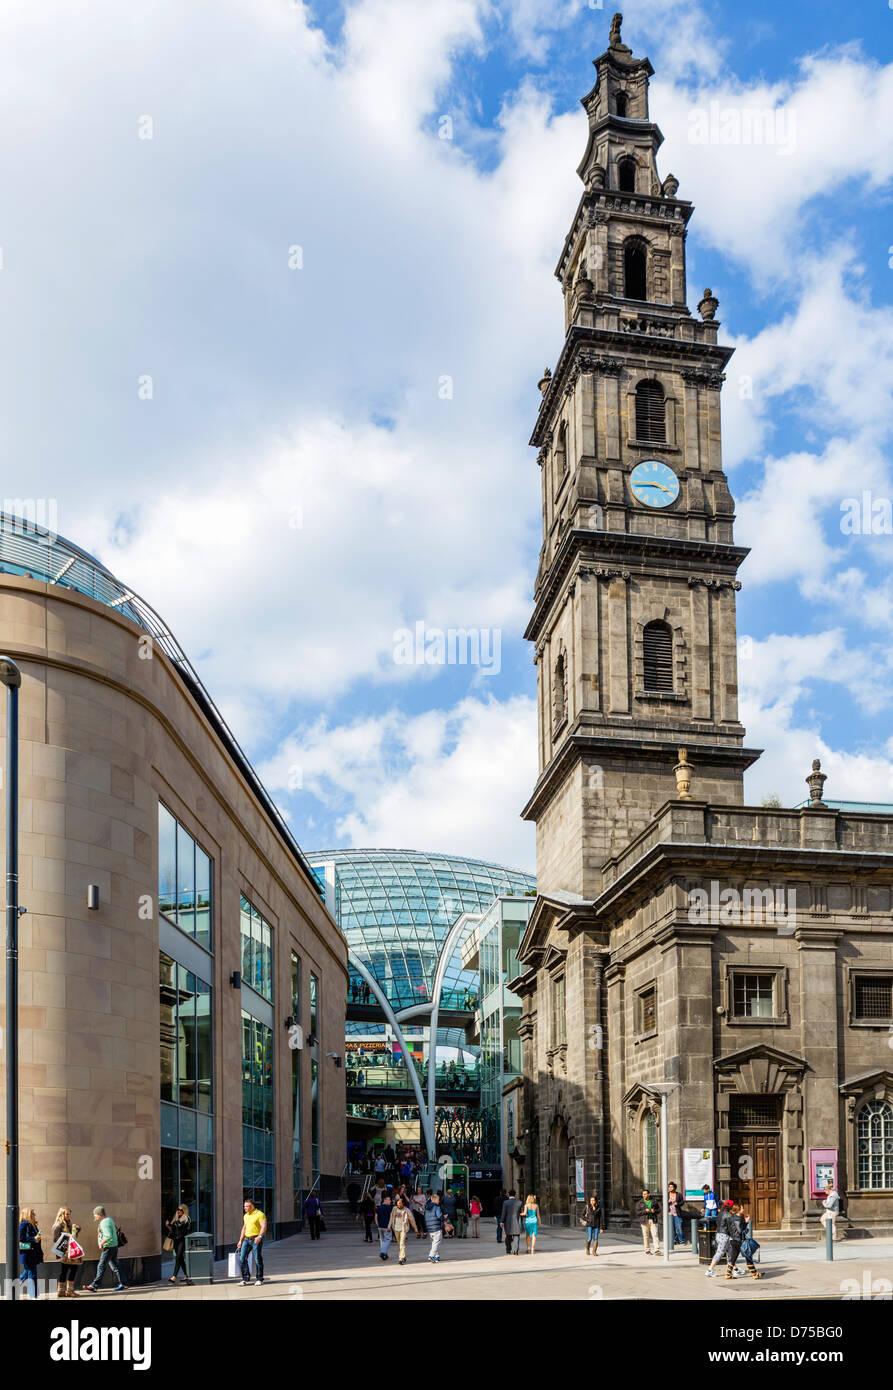 Boar Lane entrance to new (2013) Trinity Leeds shopping centre with Holy Trinity Church to right, Leeds, West Yorkshire, - Stock Image